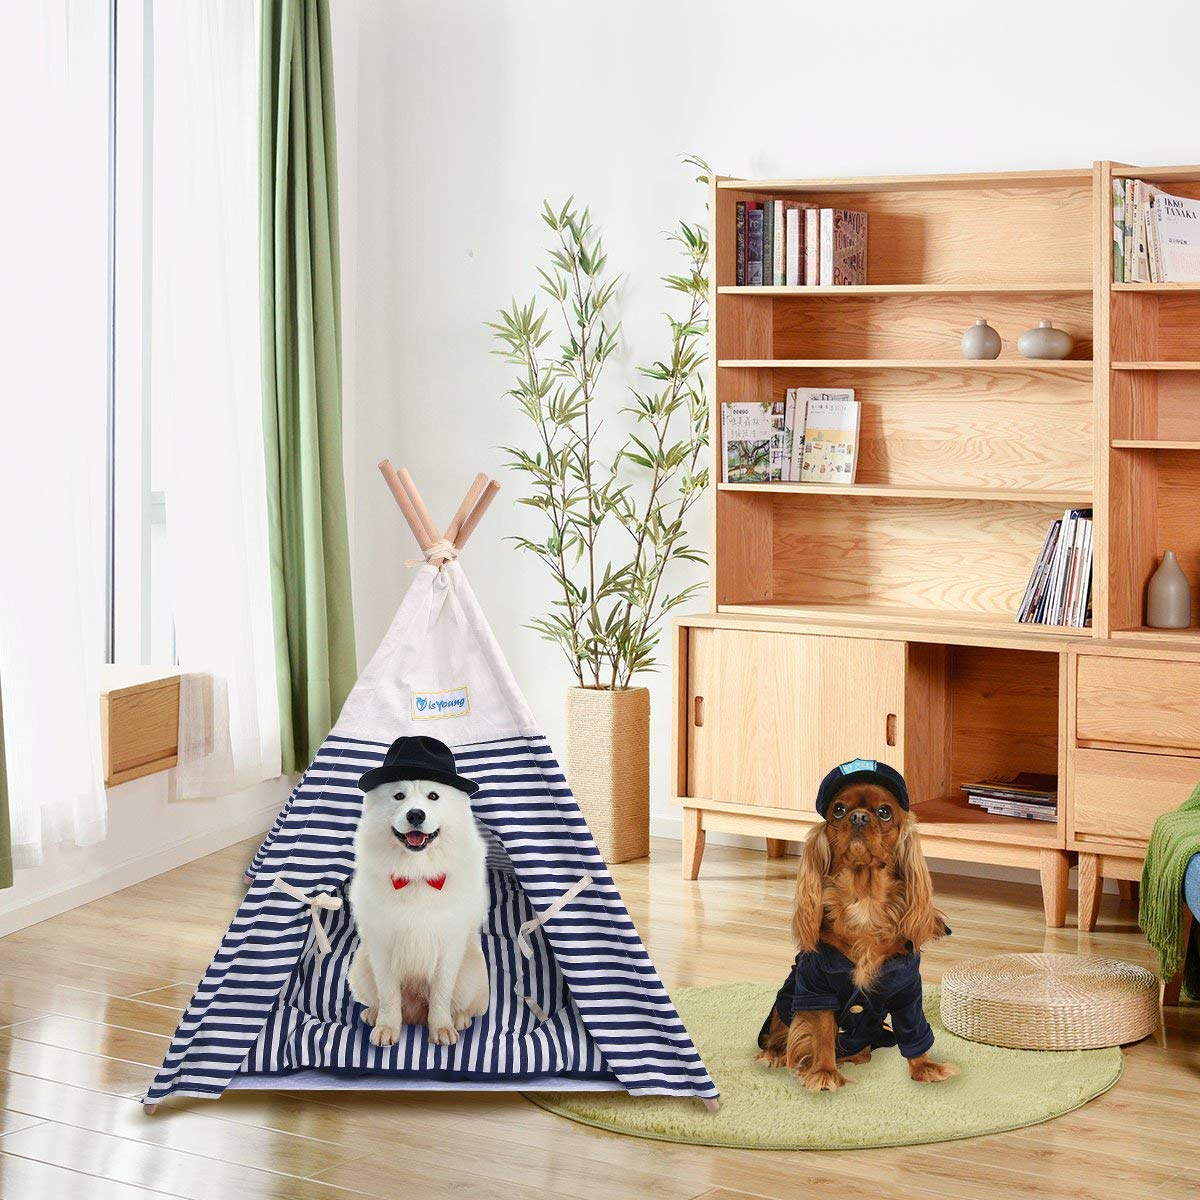 isYoung Pet Tent Bed, Pet Teepee House for Cats and Little Dogs Washable Navy Stripe Style with Breathable Mesh Window - Come with A Mat, Used All Year